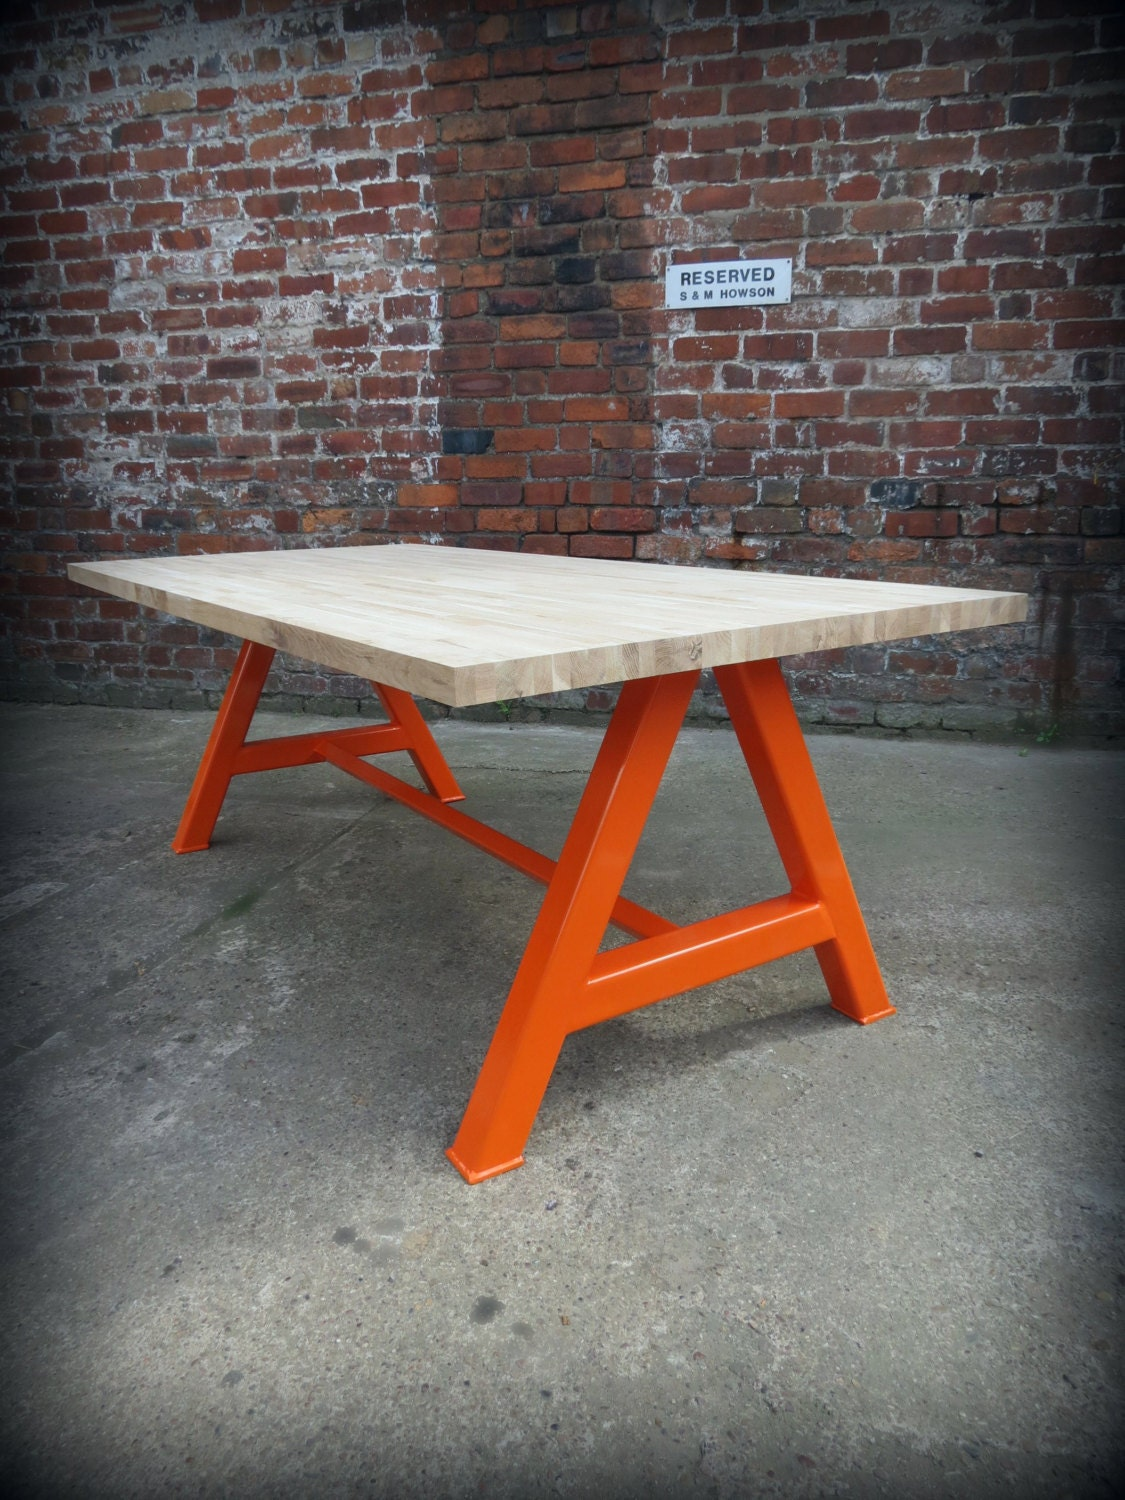 Modern Industrial Chic Solid OAK A Frame Dining Table Orange. Hand Made steel Custom Bespoke Home Decor Conference Officereclaimed 200